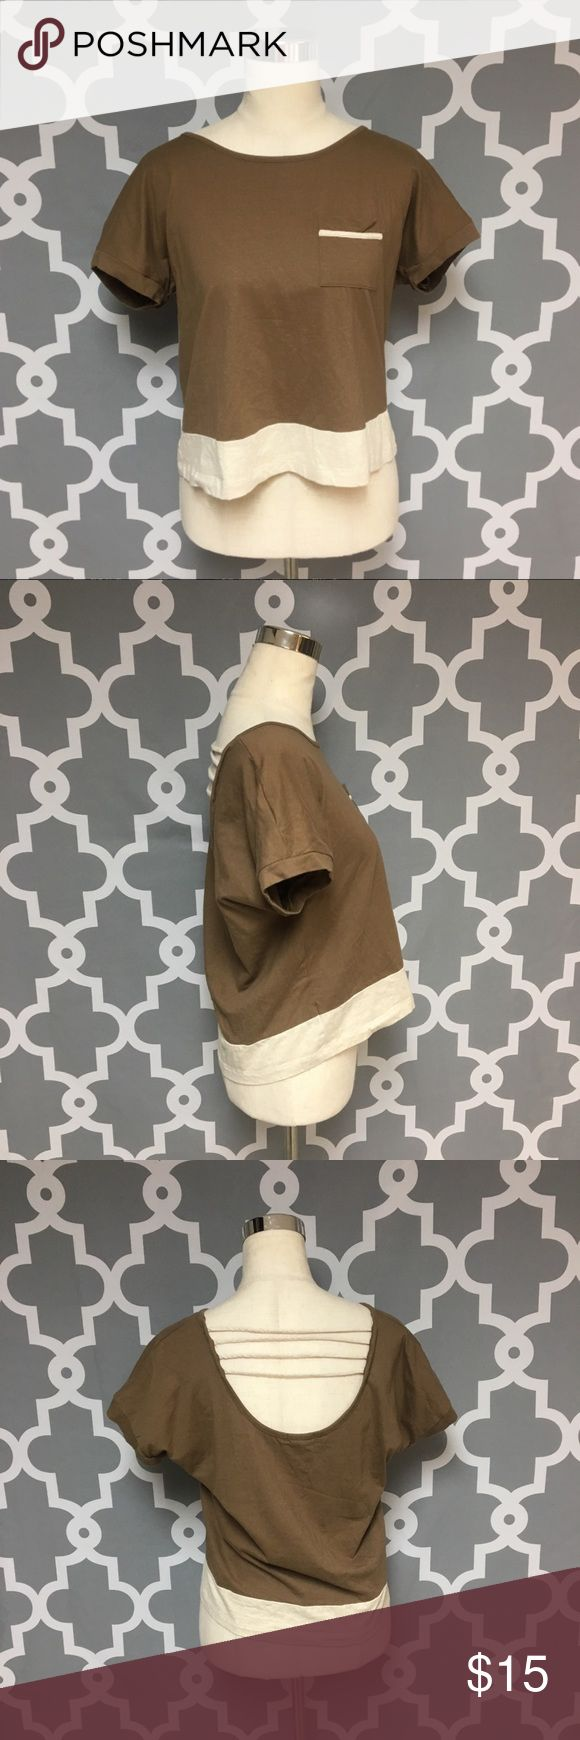 Caged Back Brown Box Fit Top : H Zenna Outfitters brown and cream Strappy Back Box Fit Top women's size large good used condition  Approximate measurements  ▪️Pit to Pit 19.5 inches  ▪️Shoulder to Hem 21 inches  Thank you for checking out my closet! Offers are always welcome or bundle for bigger savings. If you have any questions feel free to ask! Zenna Outfitters Tops